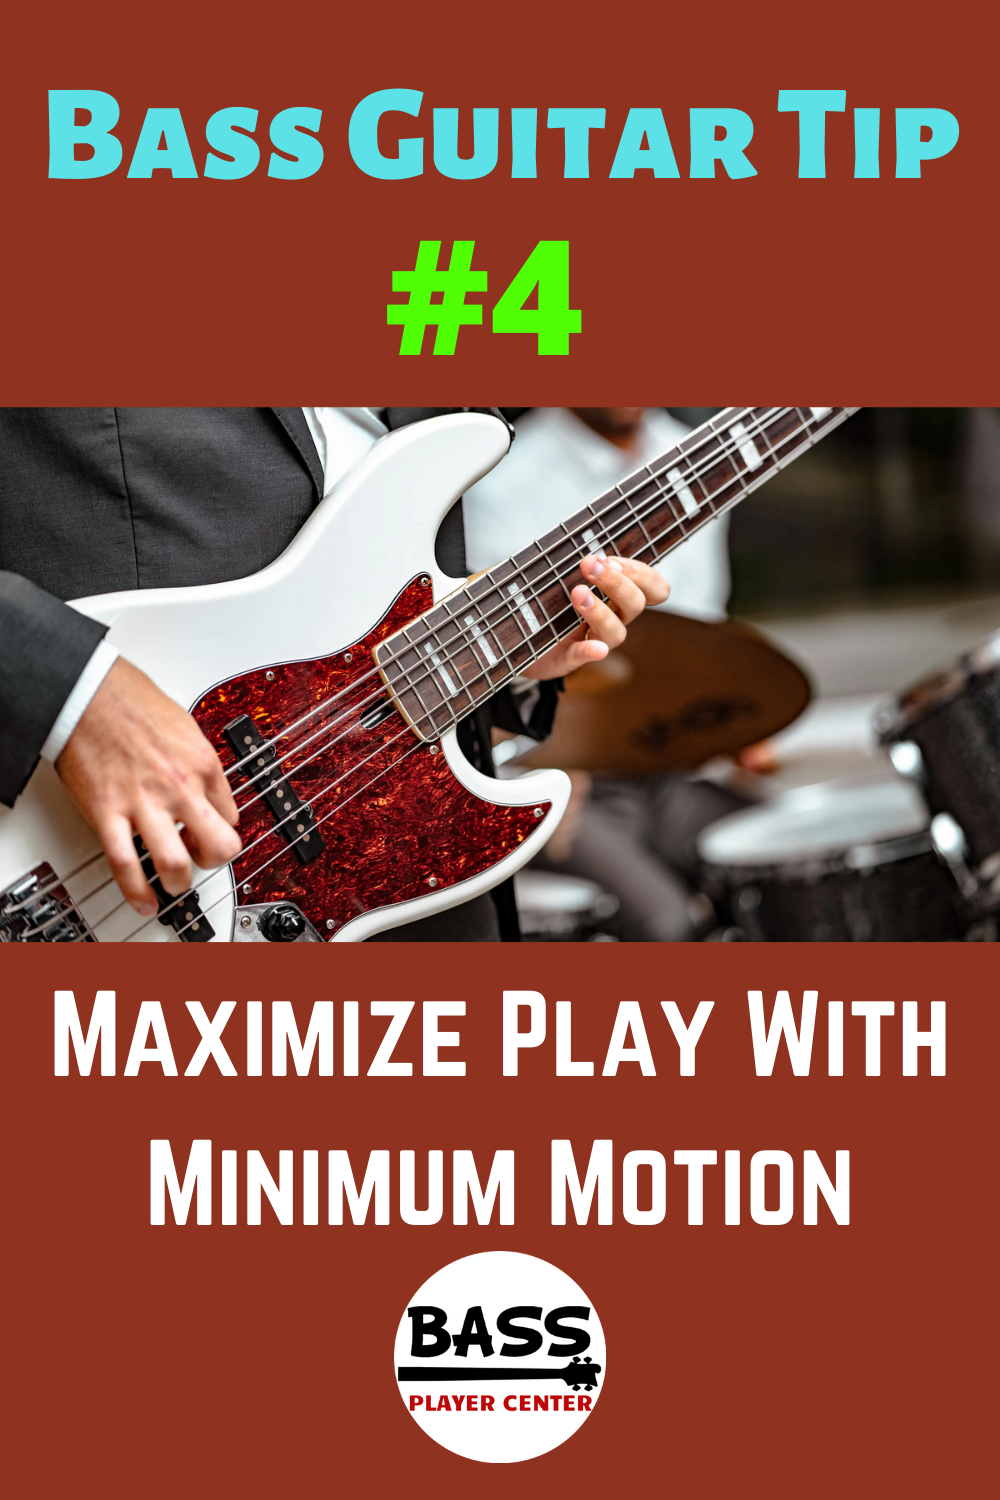 Bass Guitar Tip Maximize Play With Minimum Motion